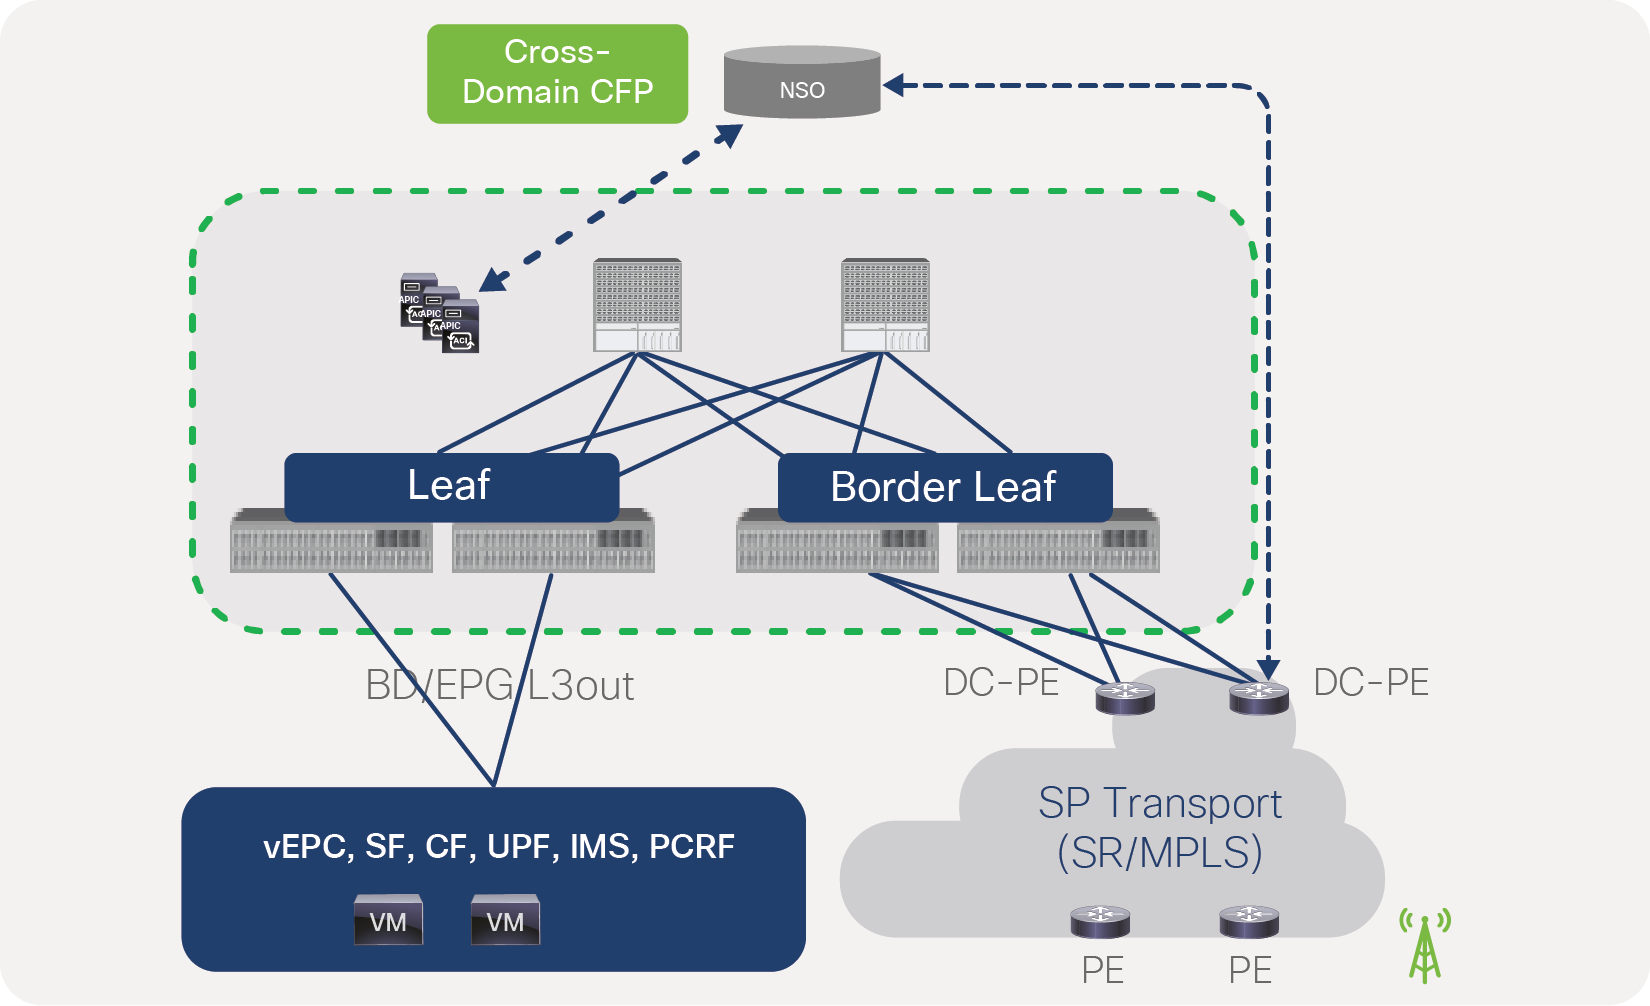 SR/MPLS configuration from NSO across the data center and transport